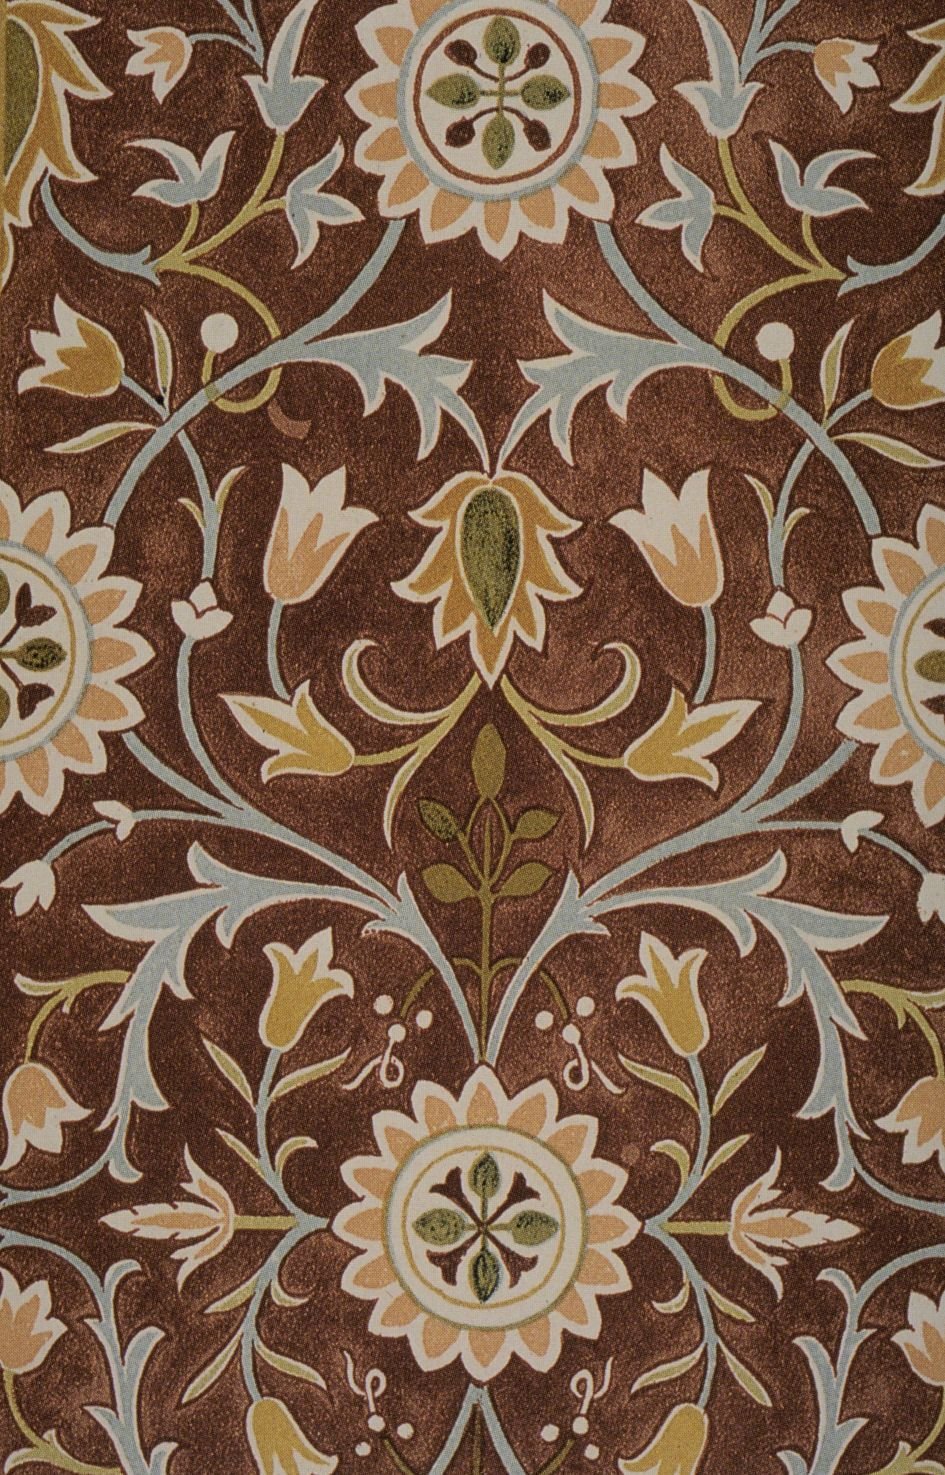 interiornice brown william mirros rug design ideas with beautiful little flower ornament for modern - Rug Design Ideas